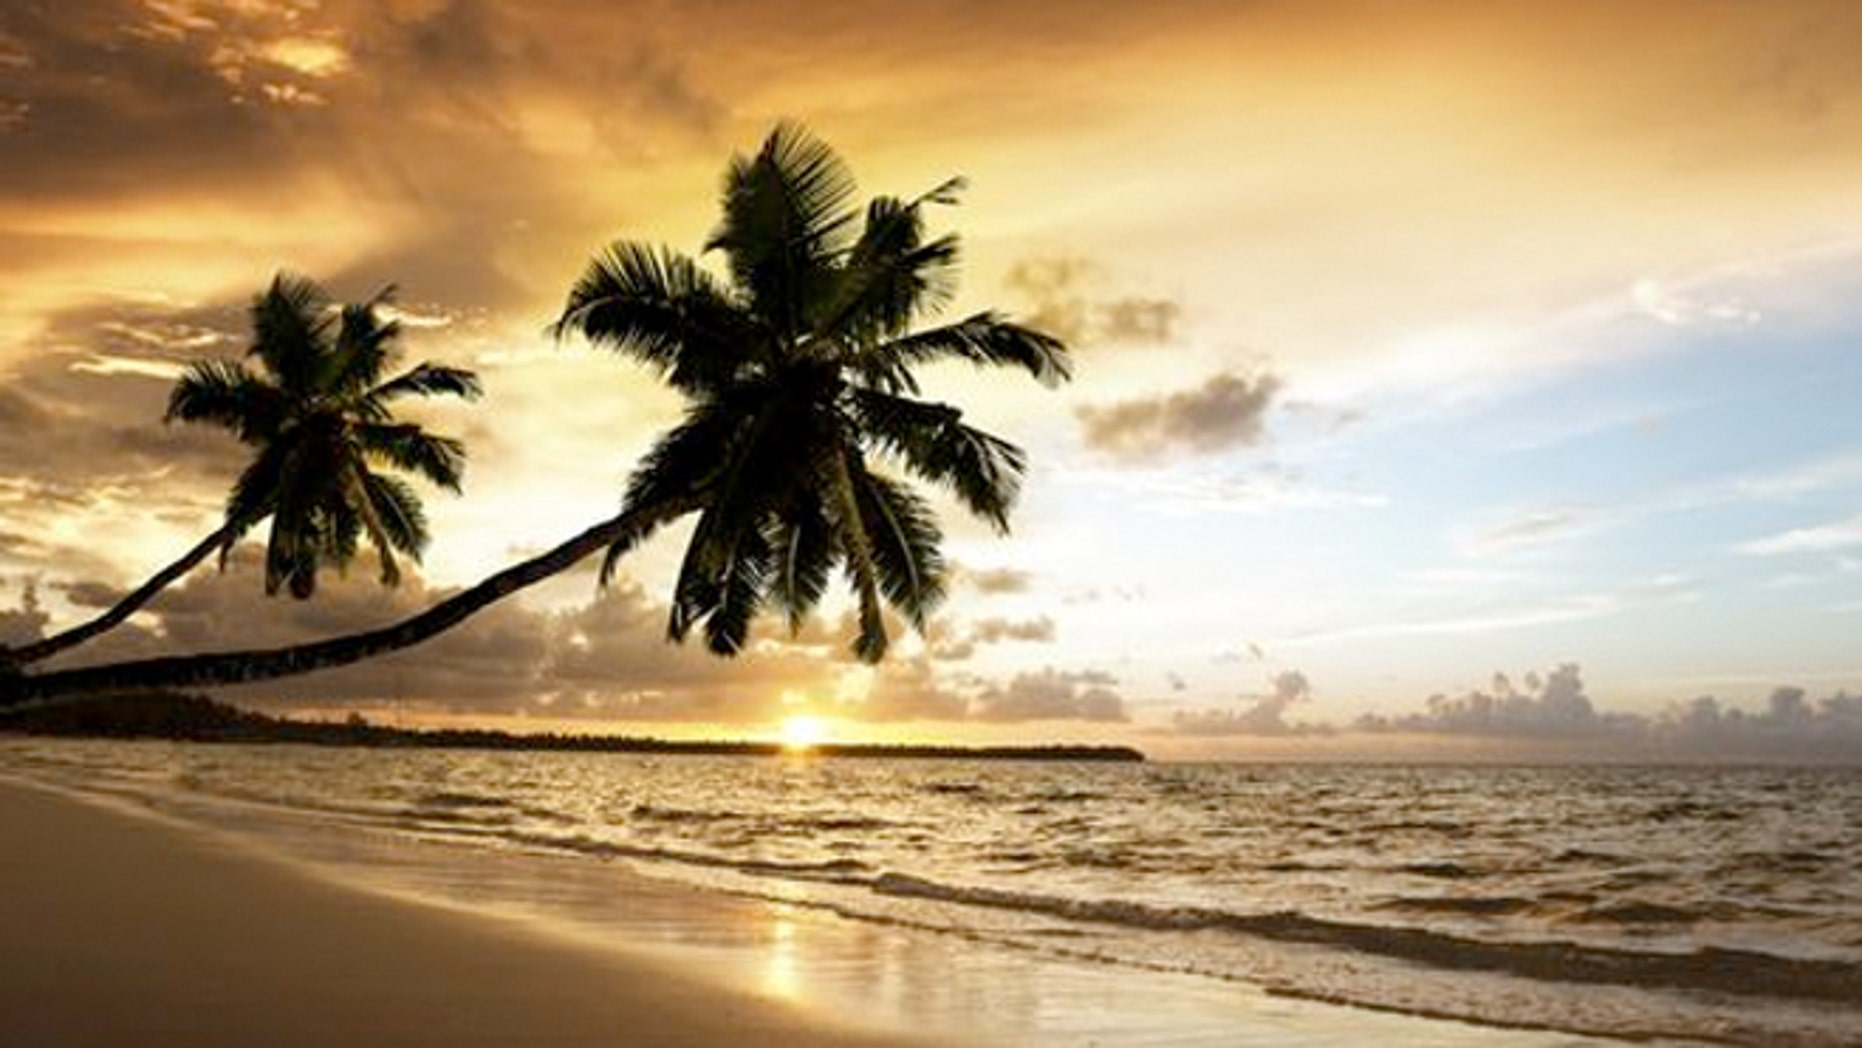 Punta Cana in the Dominican Republic is just one hot spot to travel to in 2014.